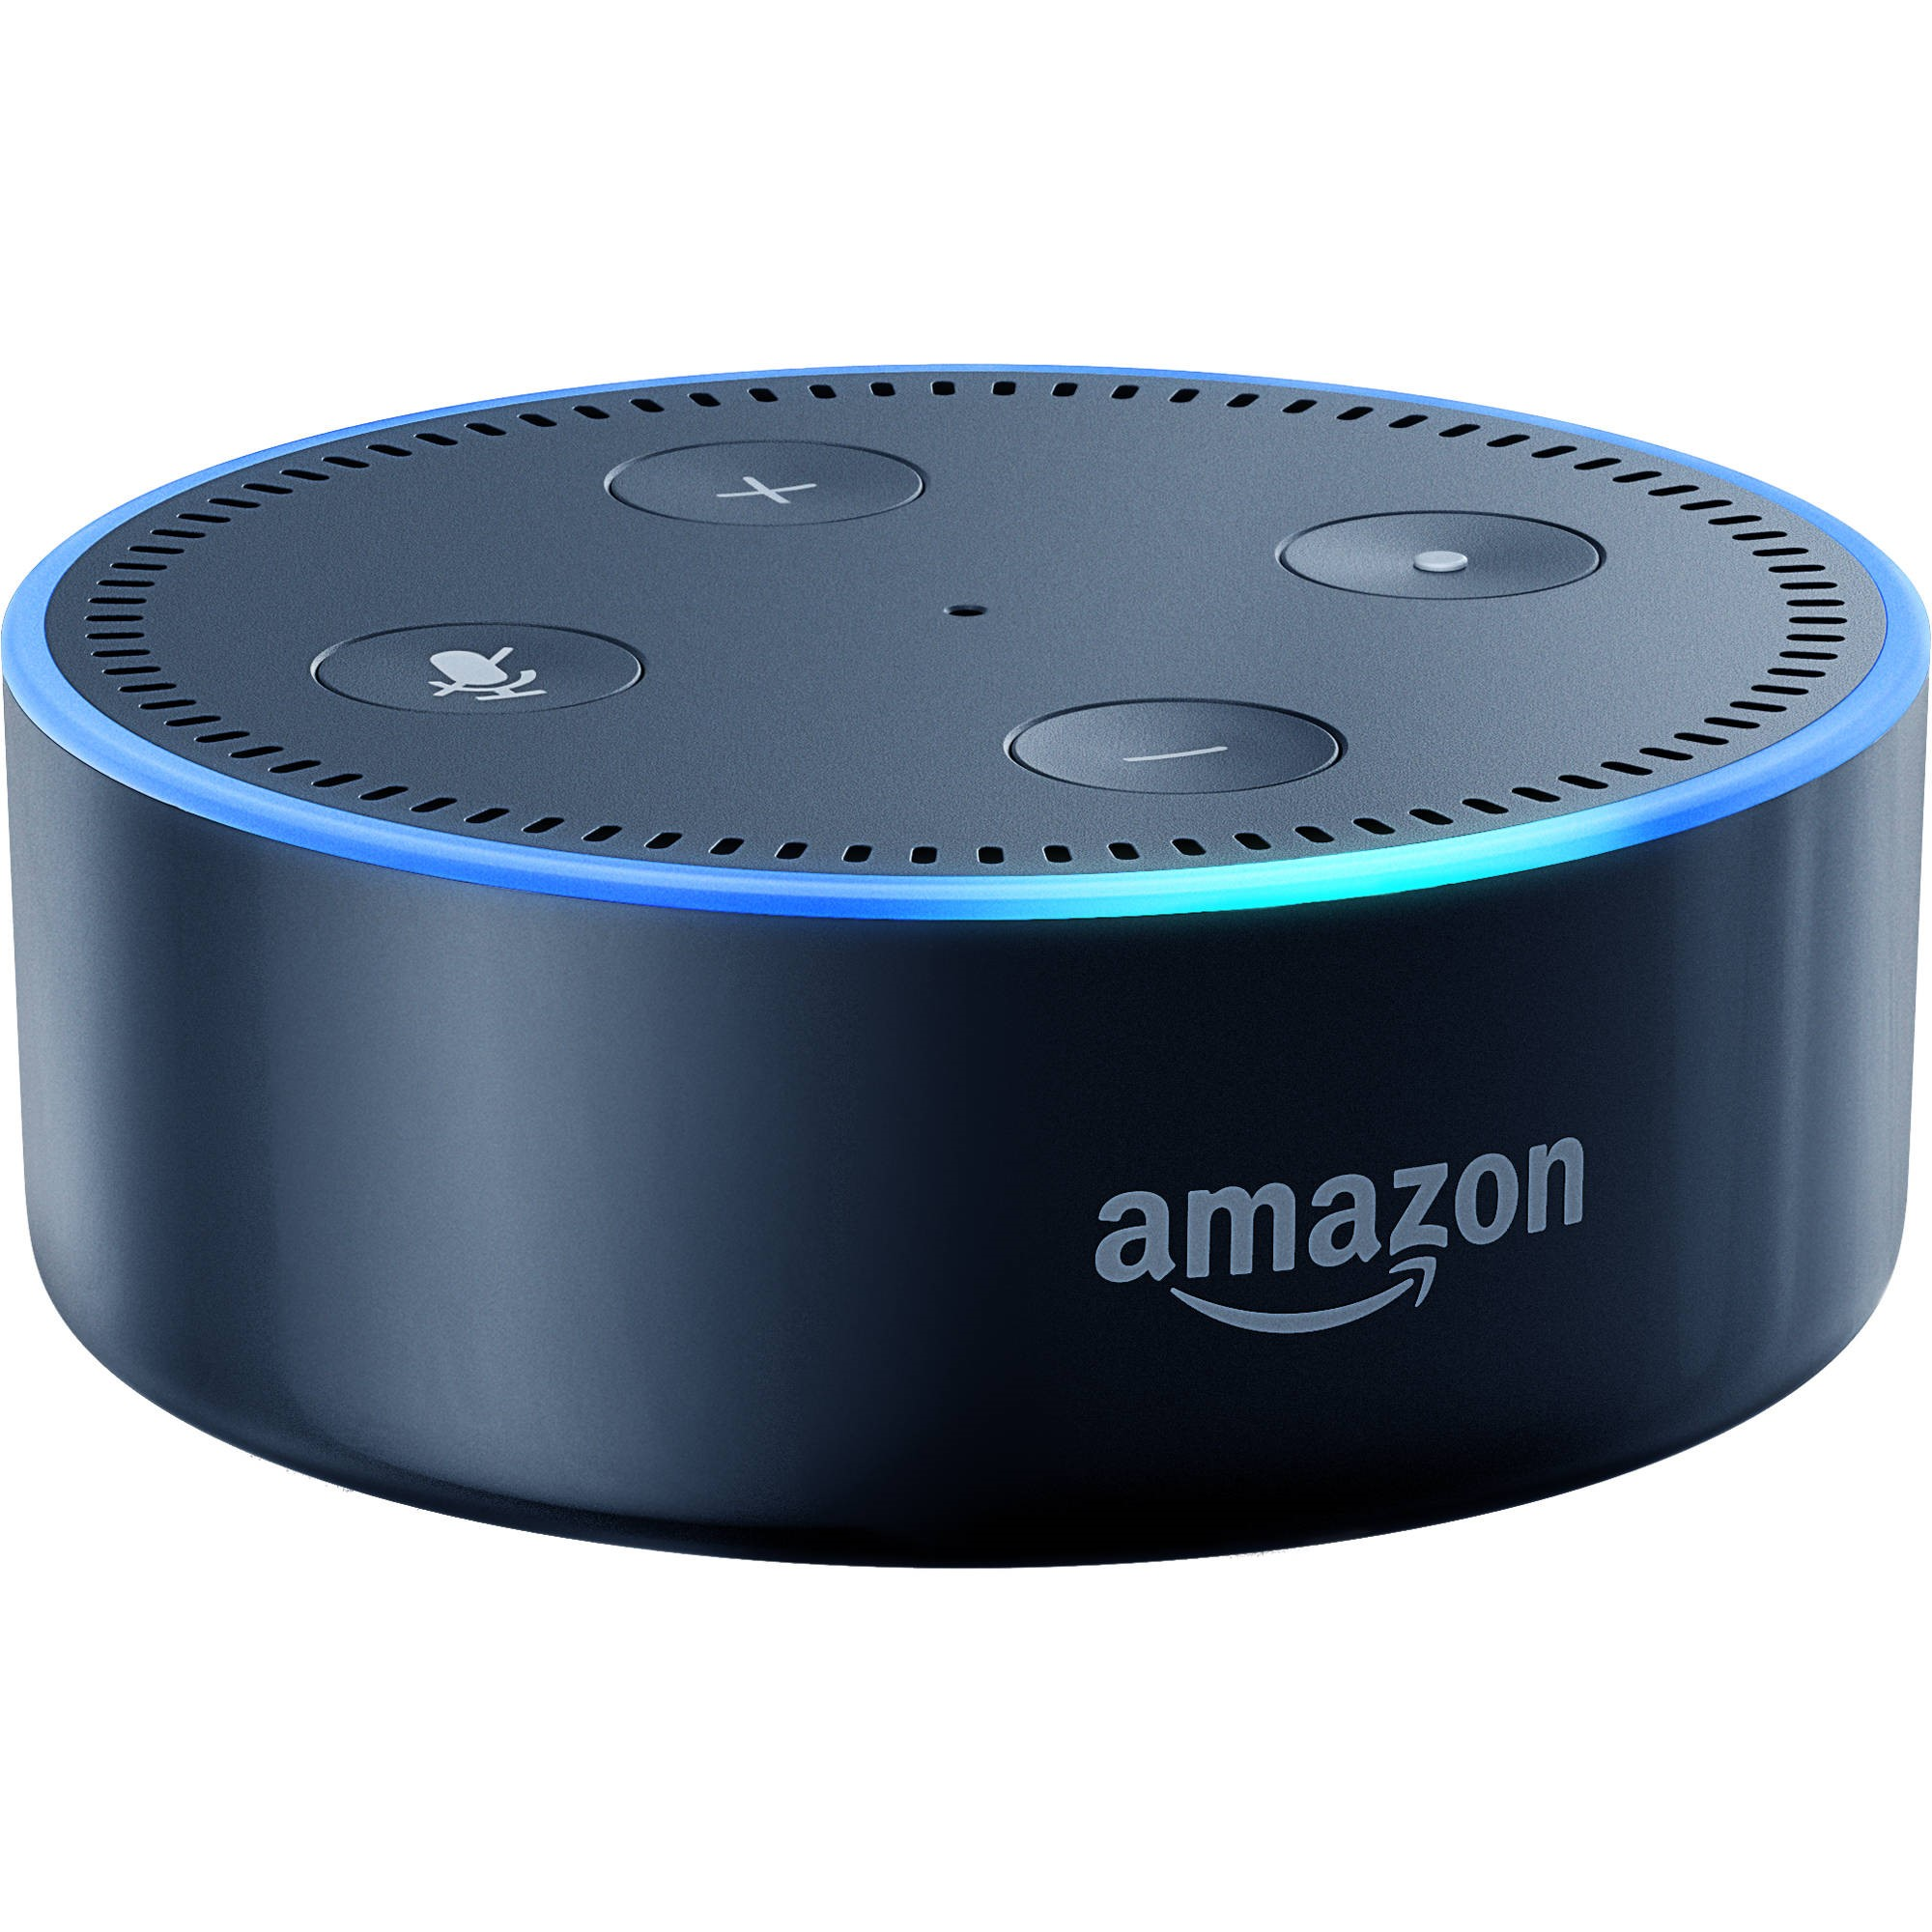 Рис.4. Amazon Echo Dot